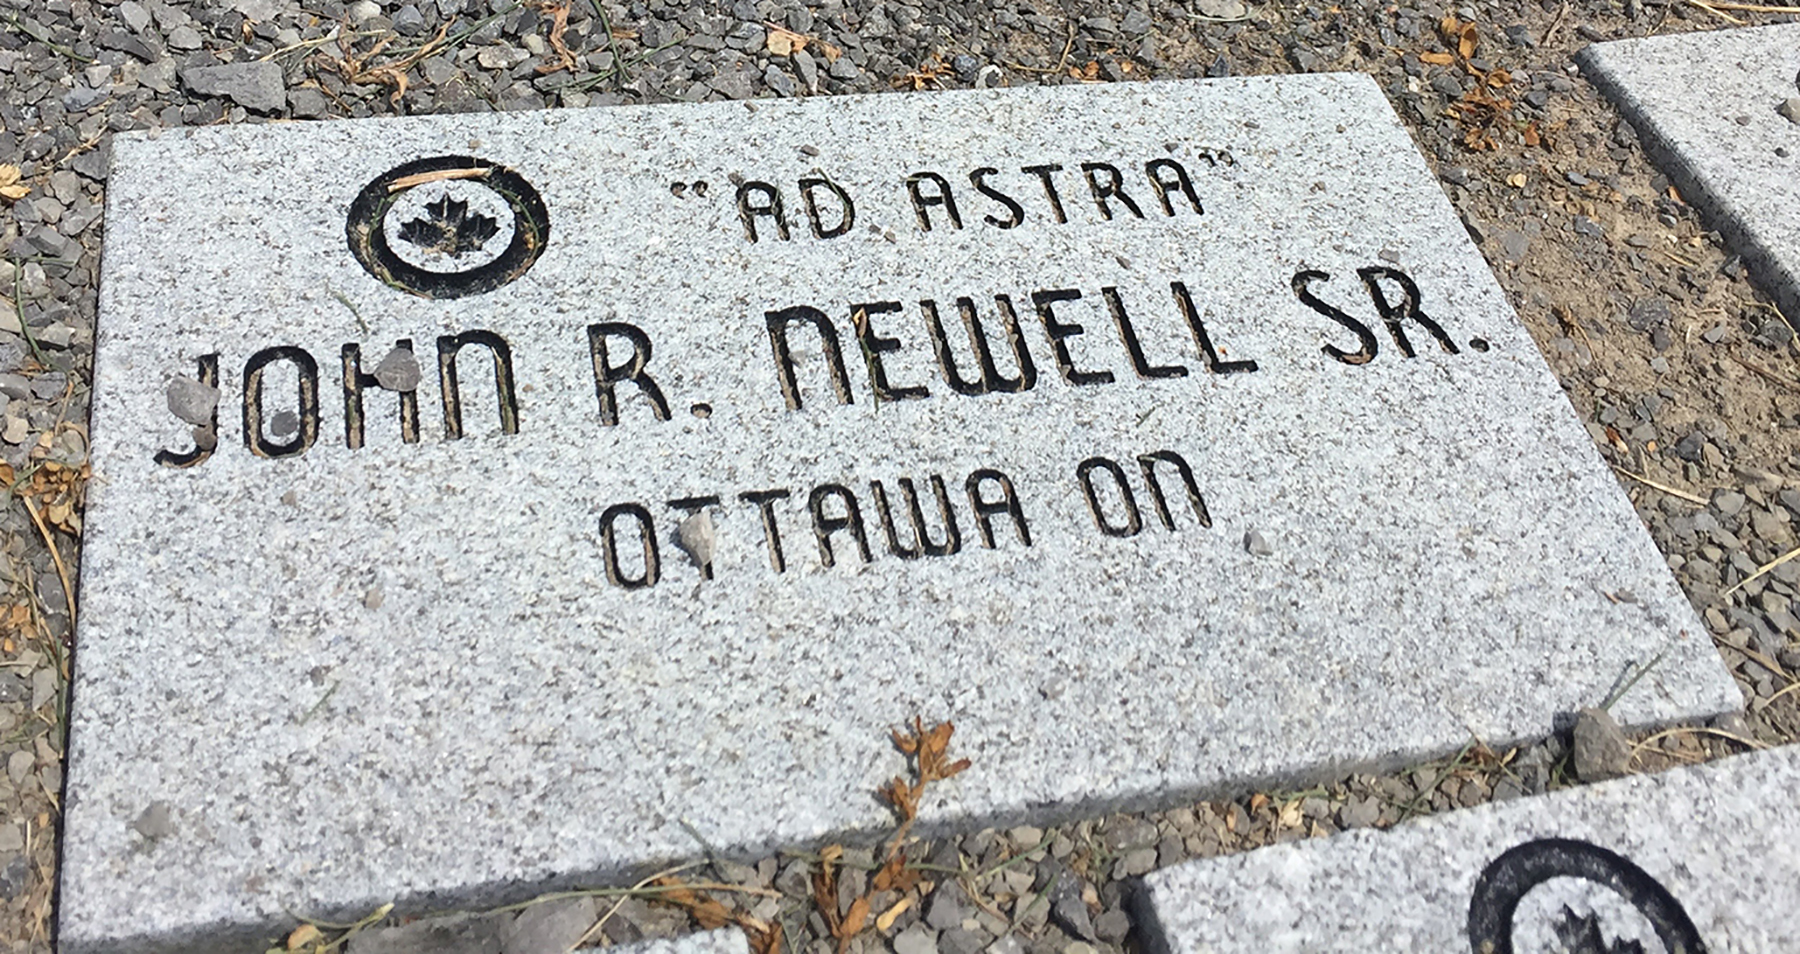 Flying Officer (retired) John Newell's memorial stone is located outside the National Air Force Museum of Canada in Trenton, Ontario, one of 10,000 such stones that honour the airmen and airwomen who served in the Second World War. The engraved stones are placed in the airpark in return for a donation to the museum. PHOTO: Alexandra Baillie-David